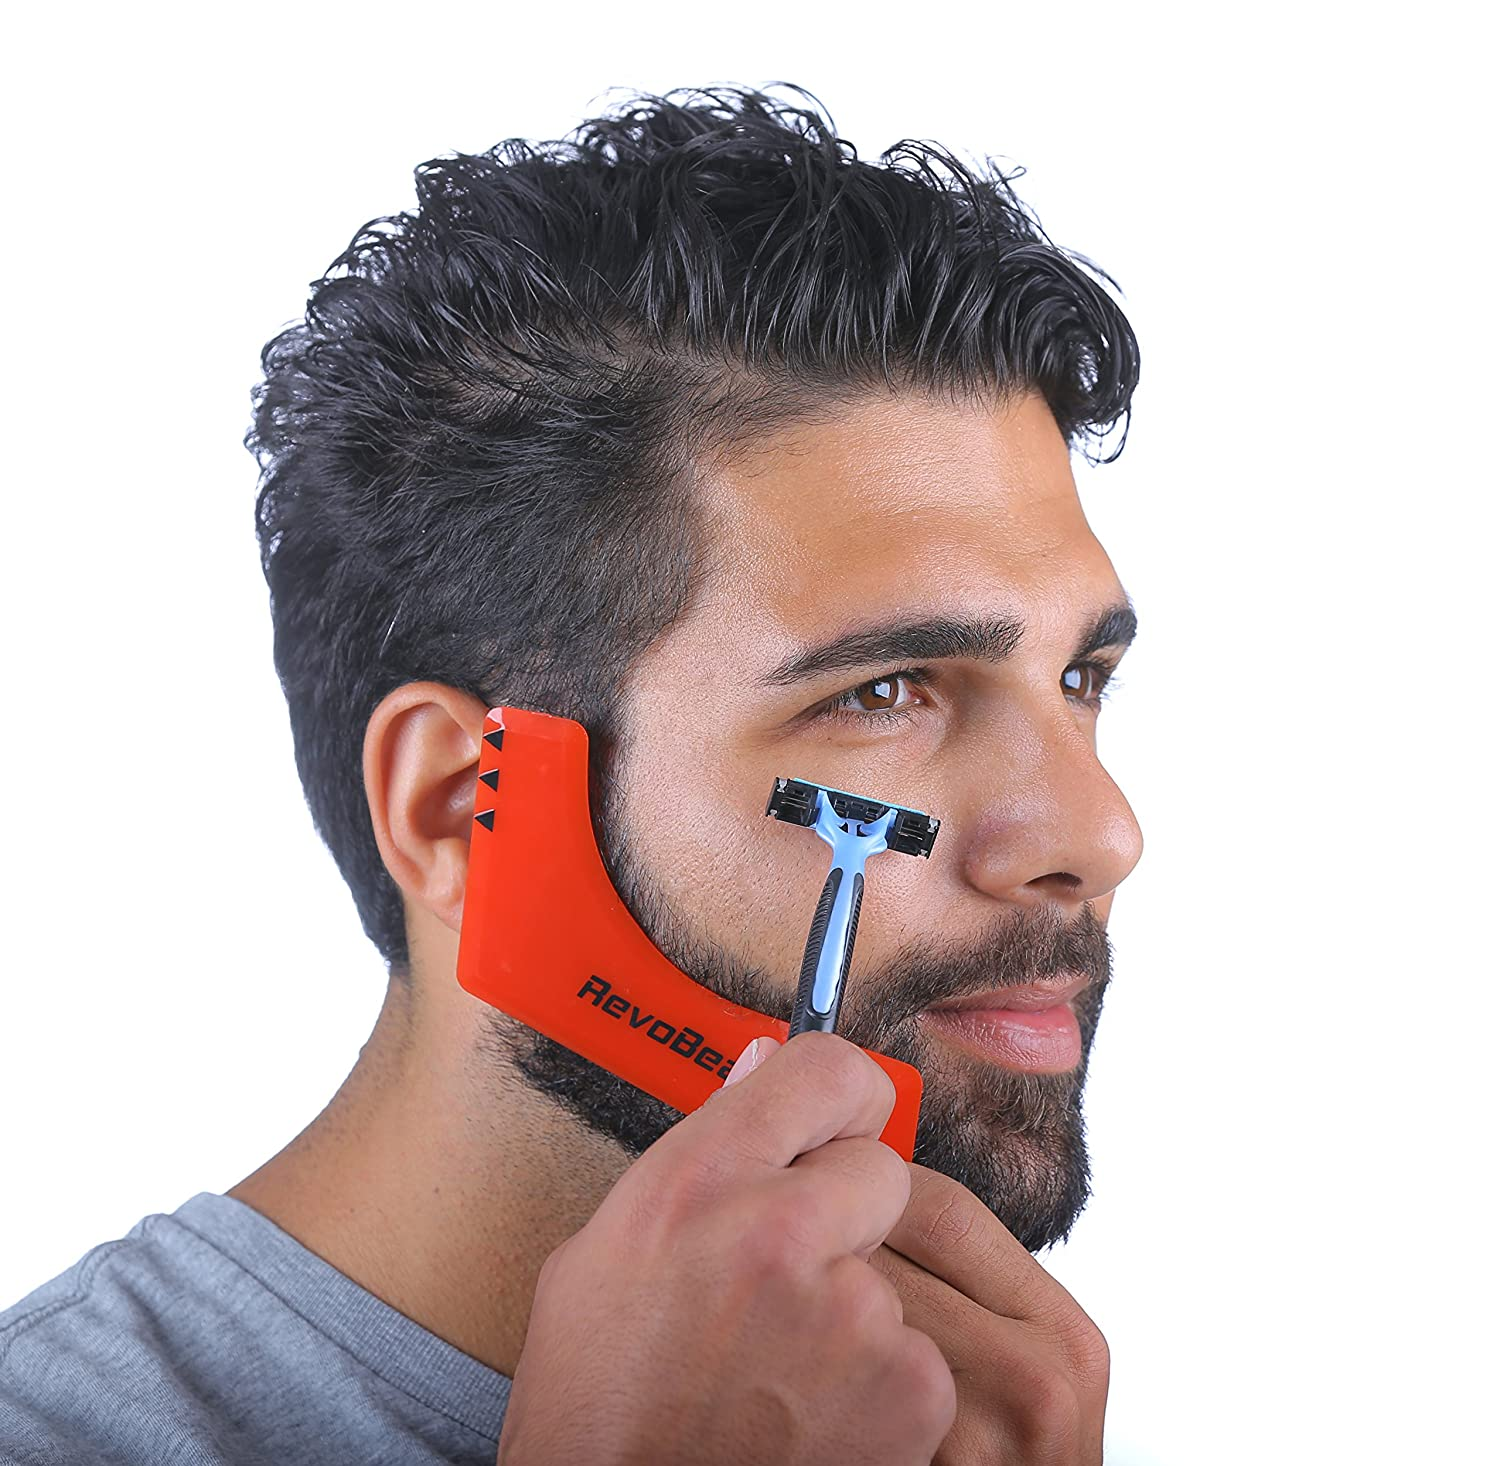 RevoBeard Beard Shaping Tool - Template - Stencil- Guide for Men - Lineup & Edging - Barber Kit - Lightweight and Flexible - Premium One Size Fits All - Curve Cut, Step Cut, Neckline & Goatee Trimming z105